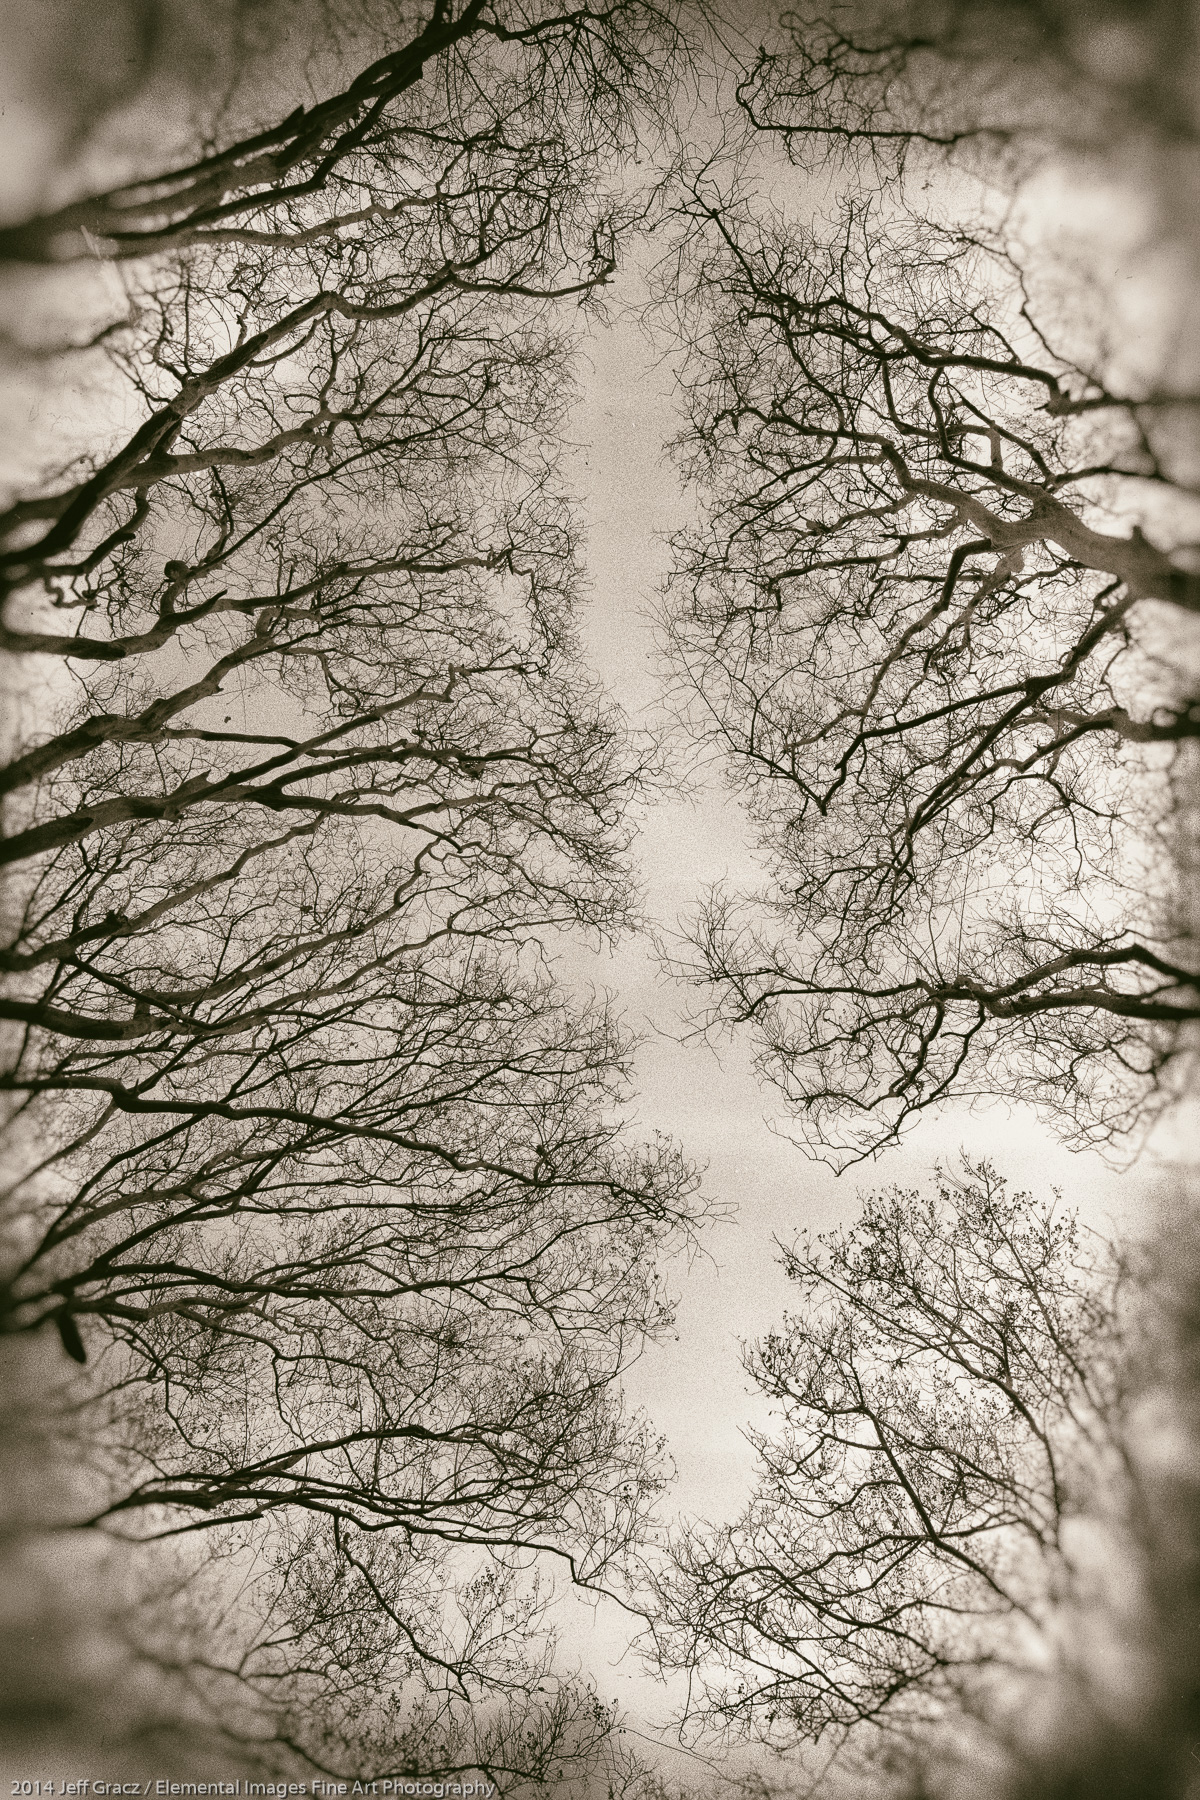 Branches VIII | Dallas | TX | USA - © 2014 Jeff Gracz / Elemental Images Fine Art Photography - All Rights Reserved Worldwide